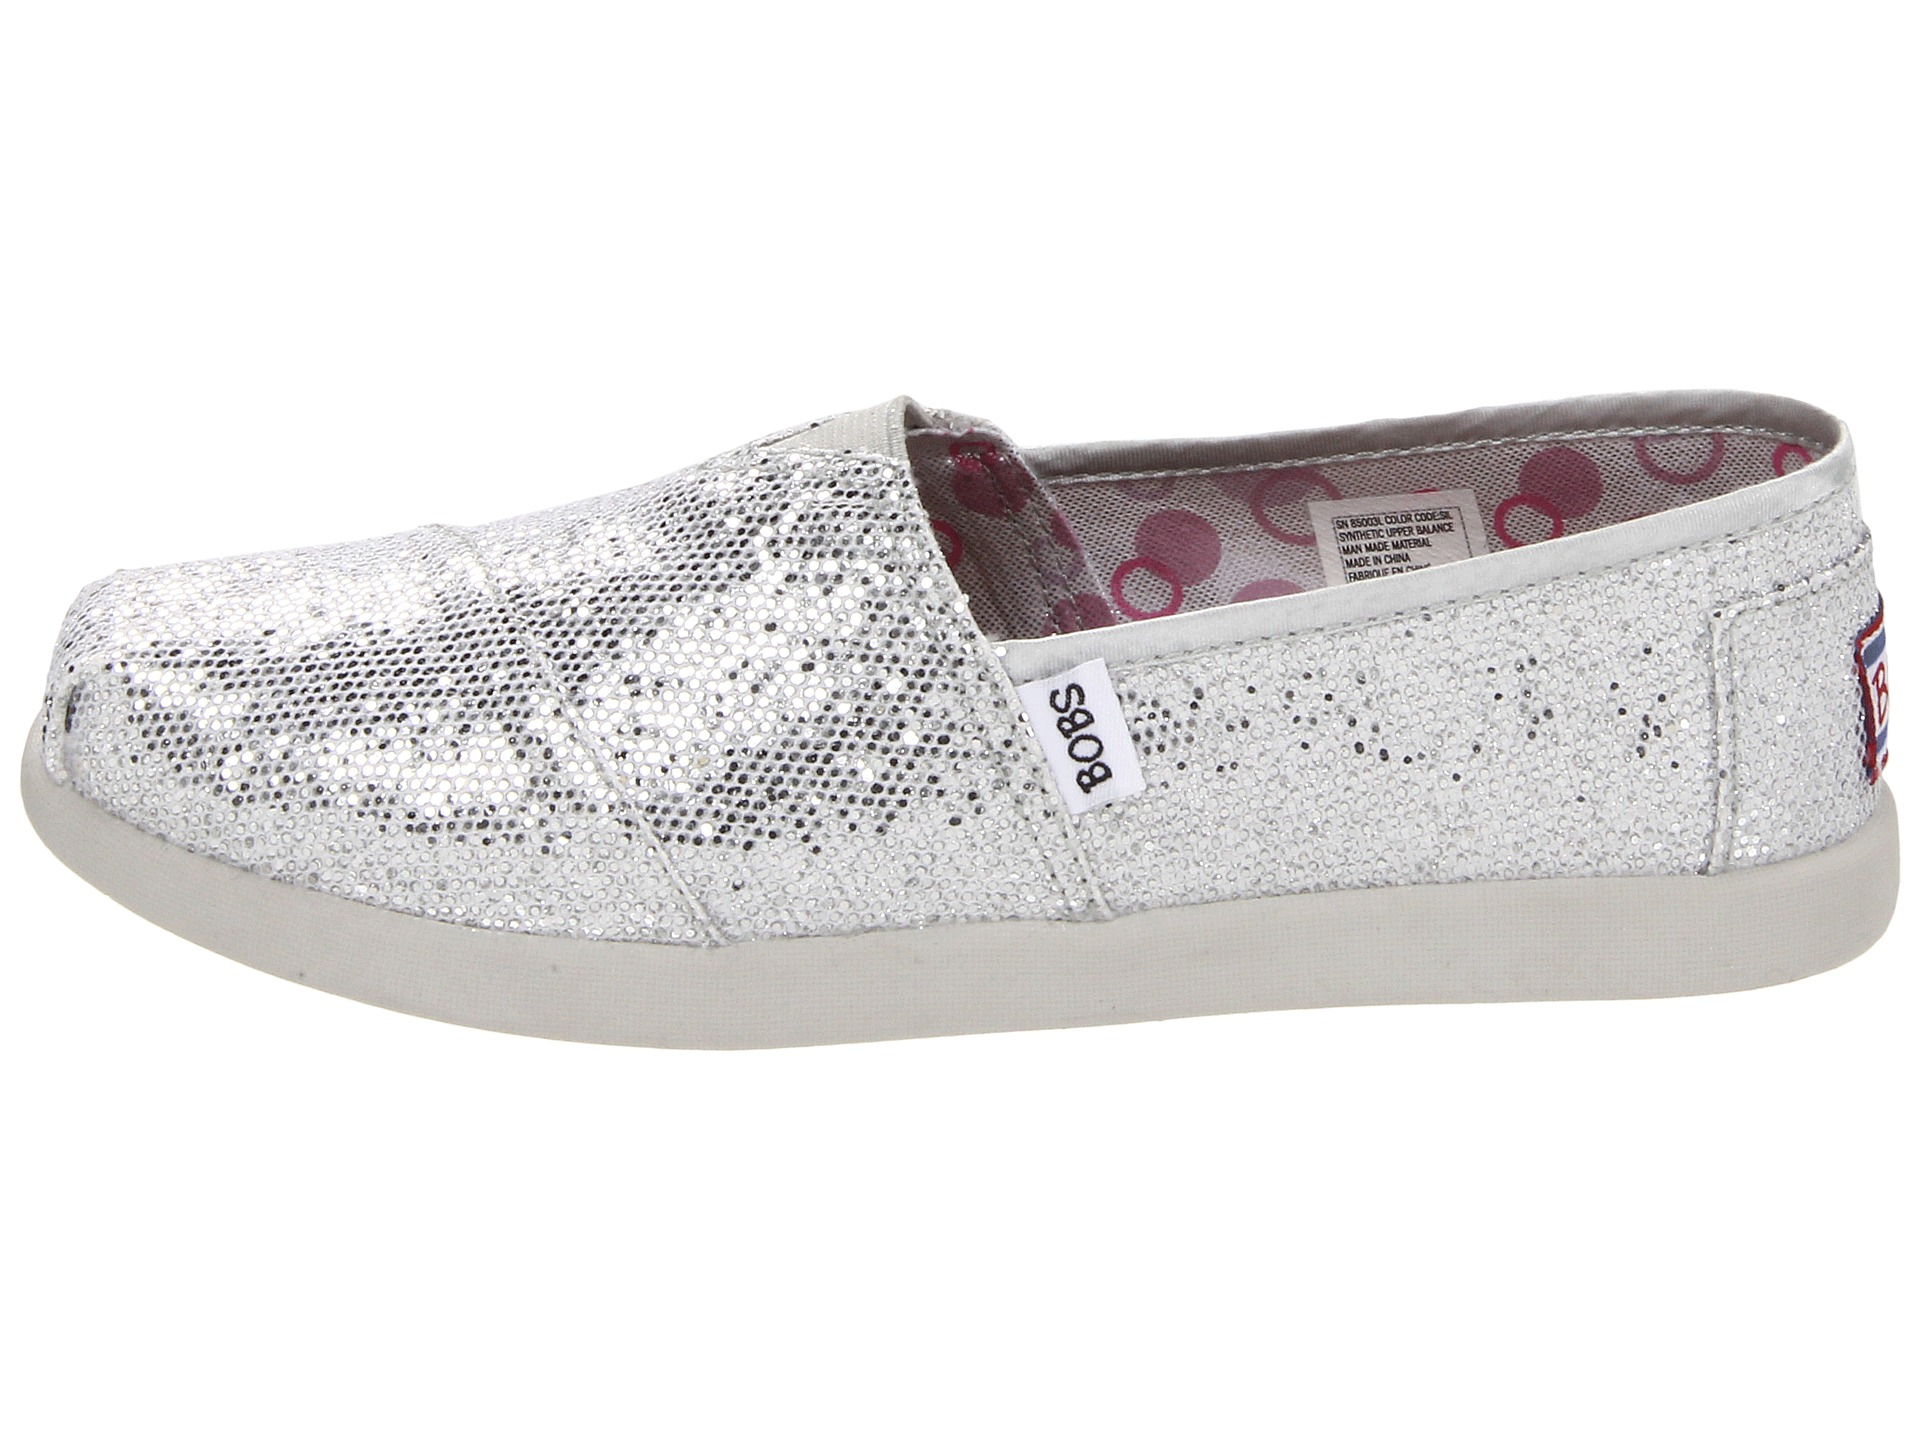 Buy Skechers BOBS Women's Bobs Plush-Peace & Love and other Flats at viplikecuatoi.ml Our wide selection is eligible for free shipping and free returns.